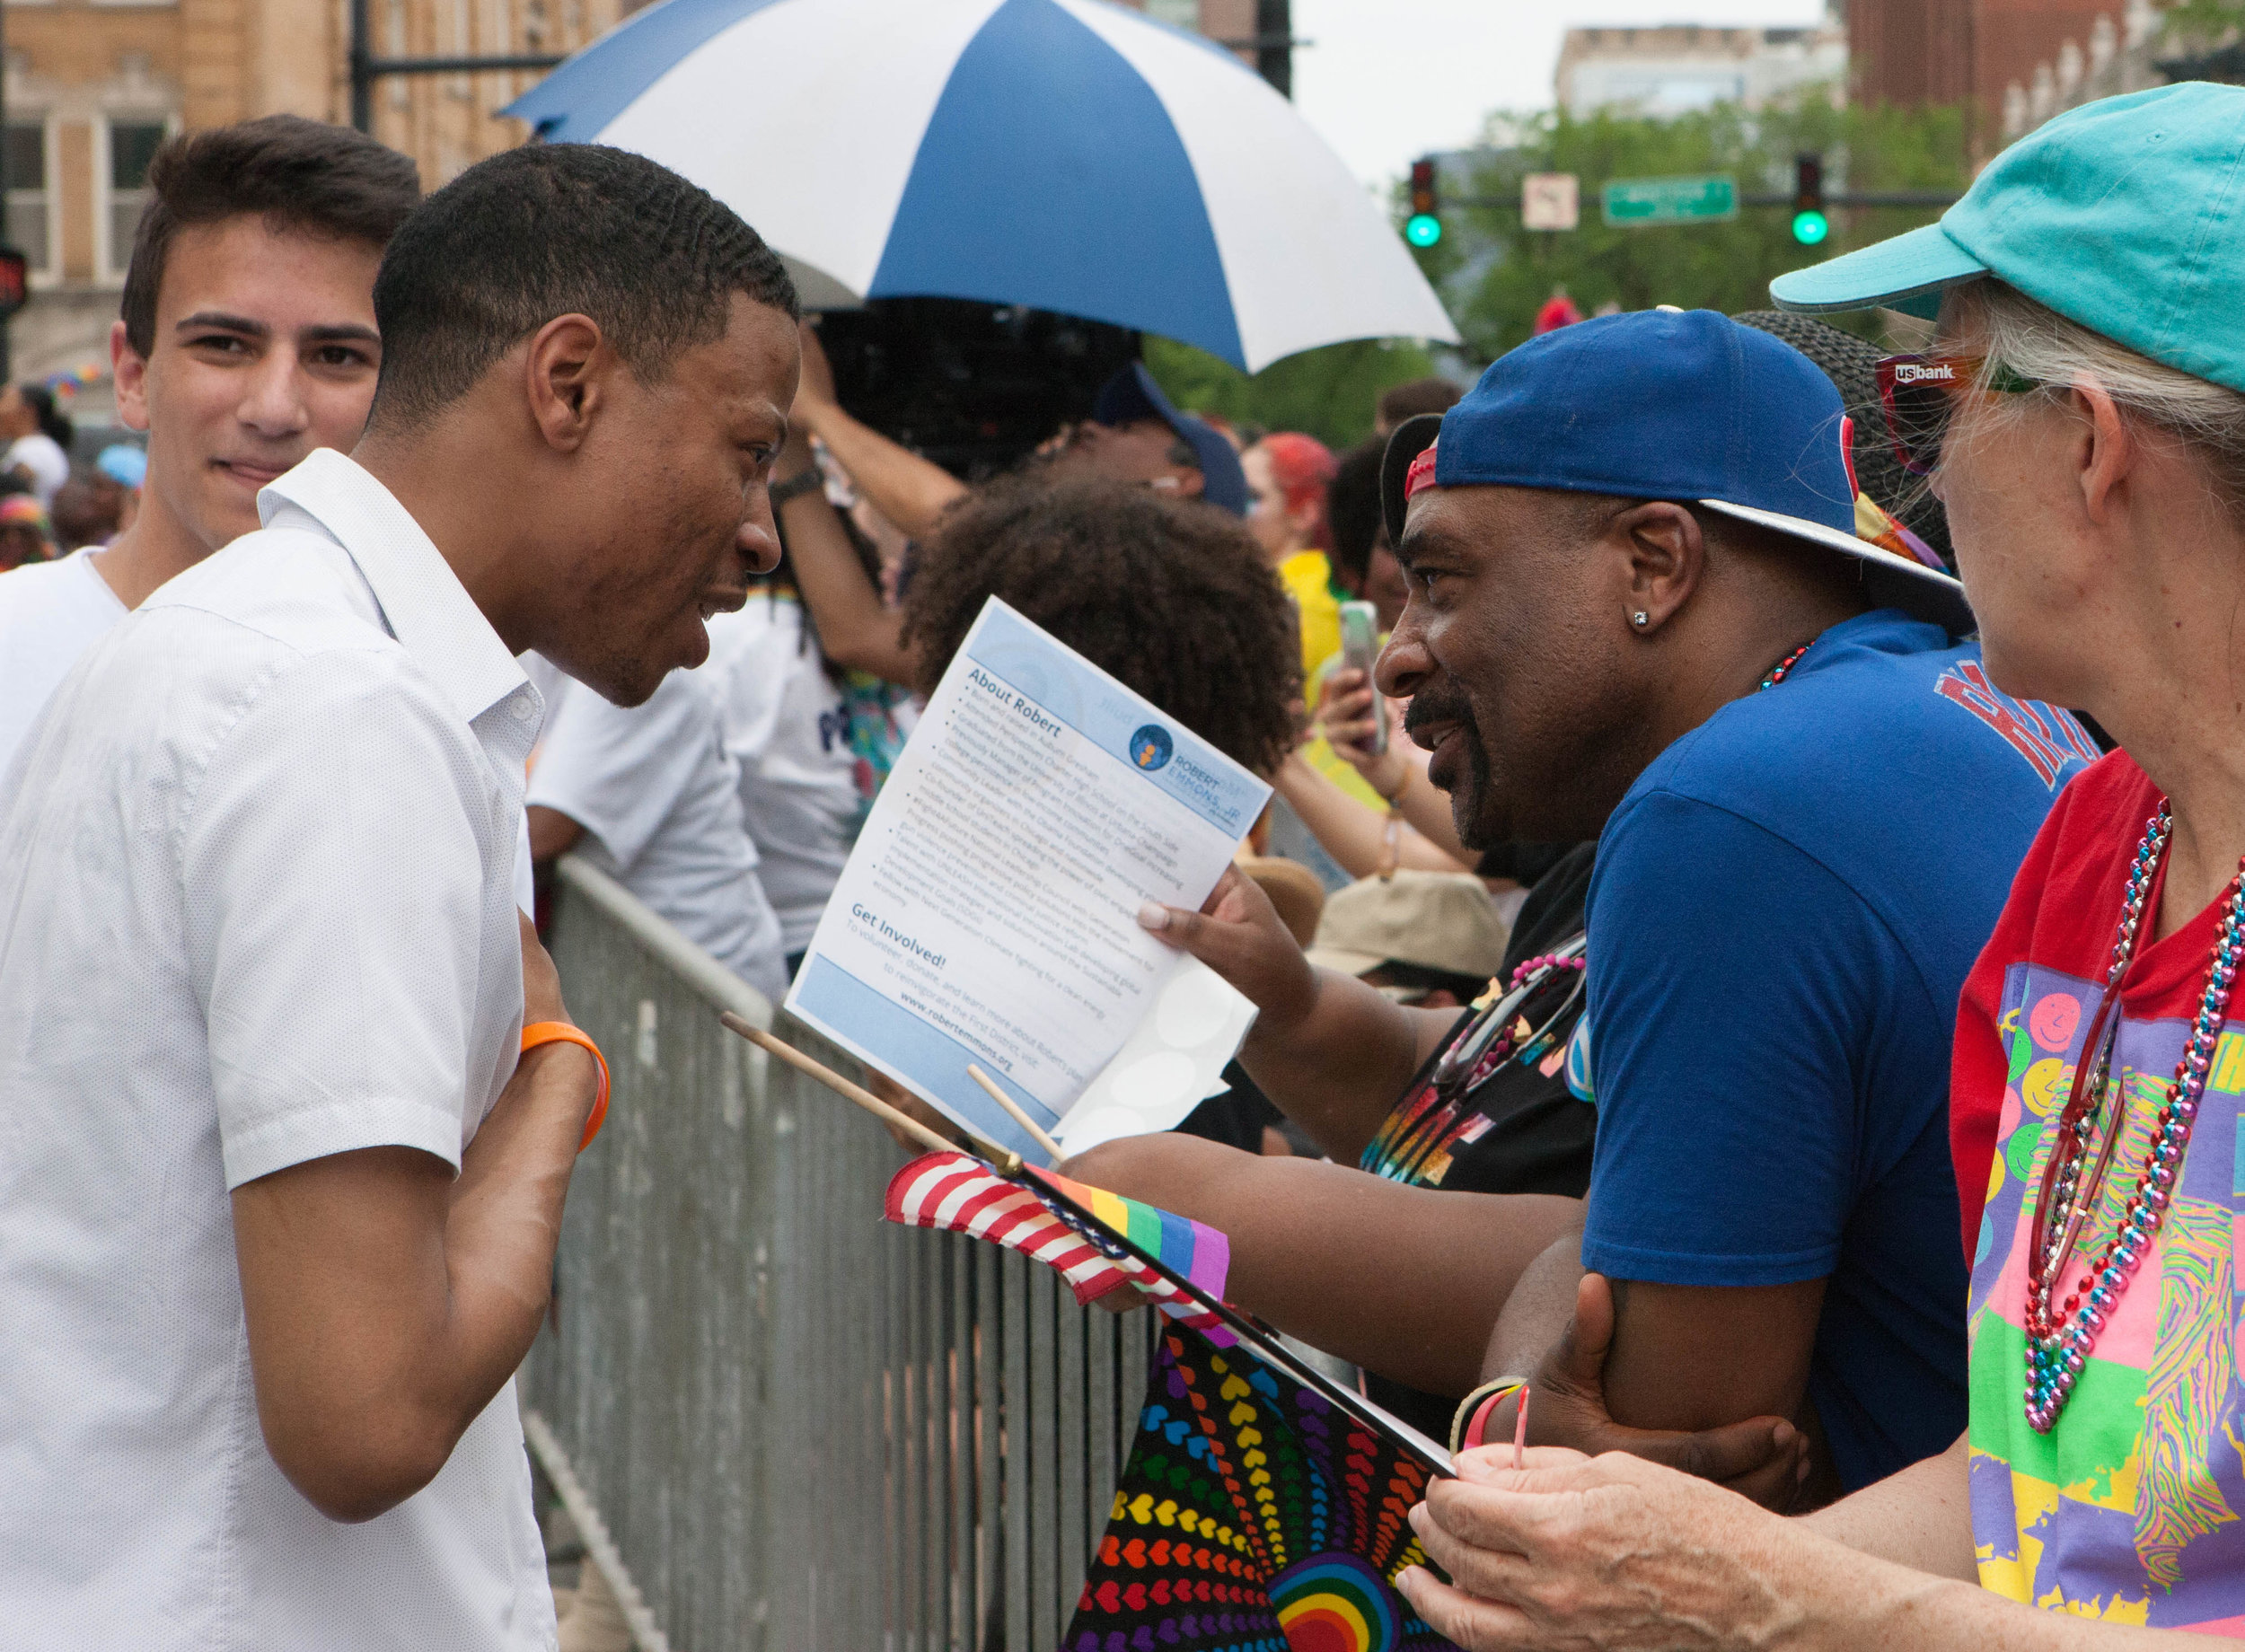 Robert speaks with a man across a barrier at the Pride Parade.